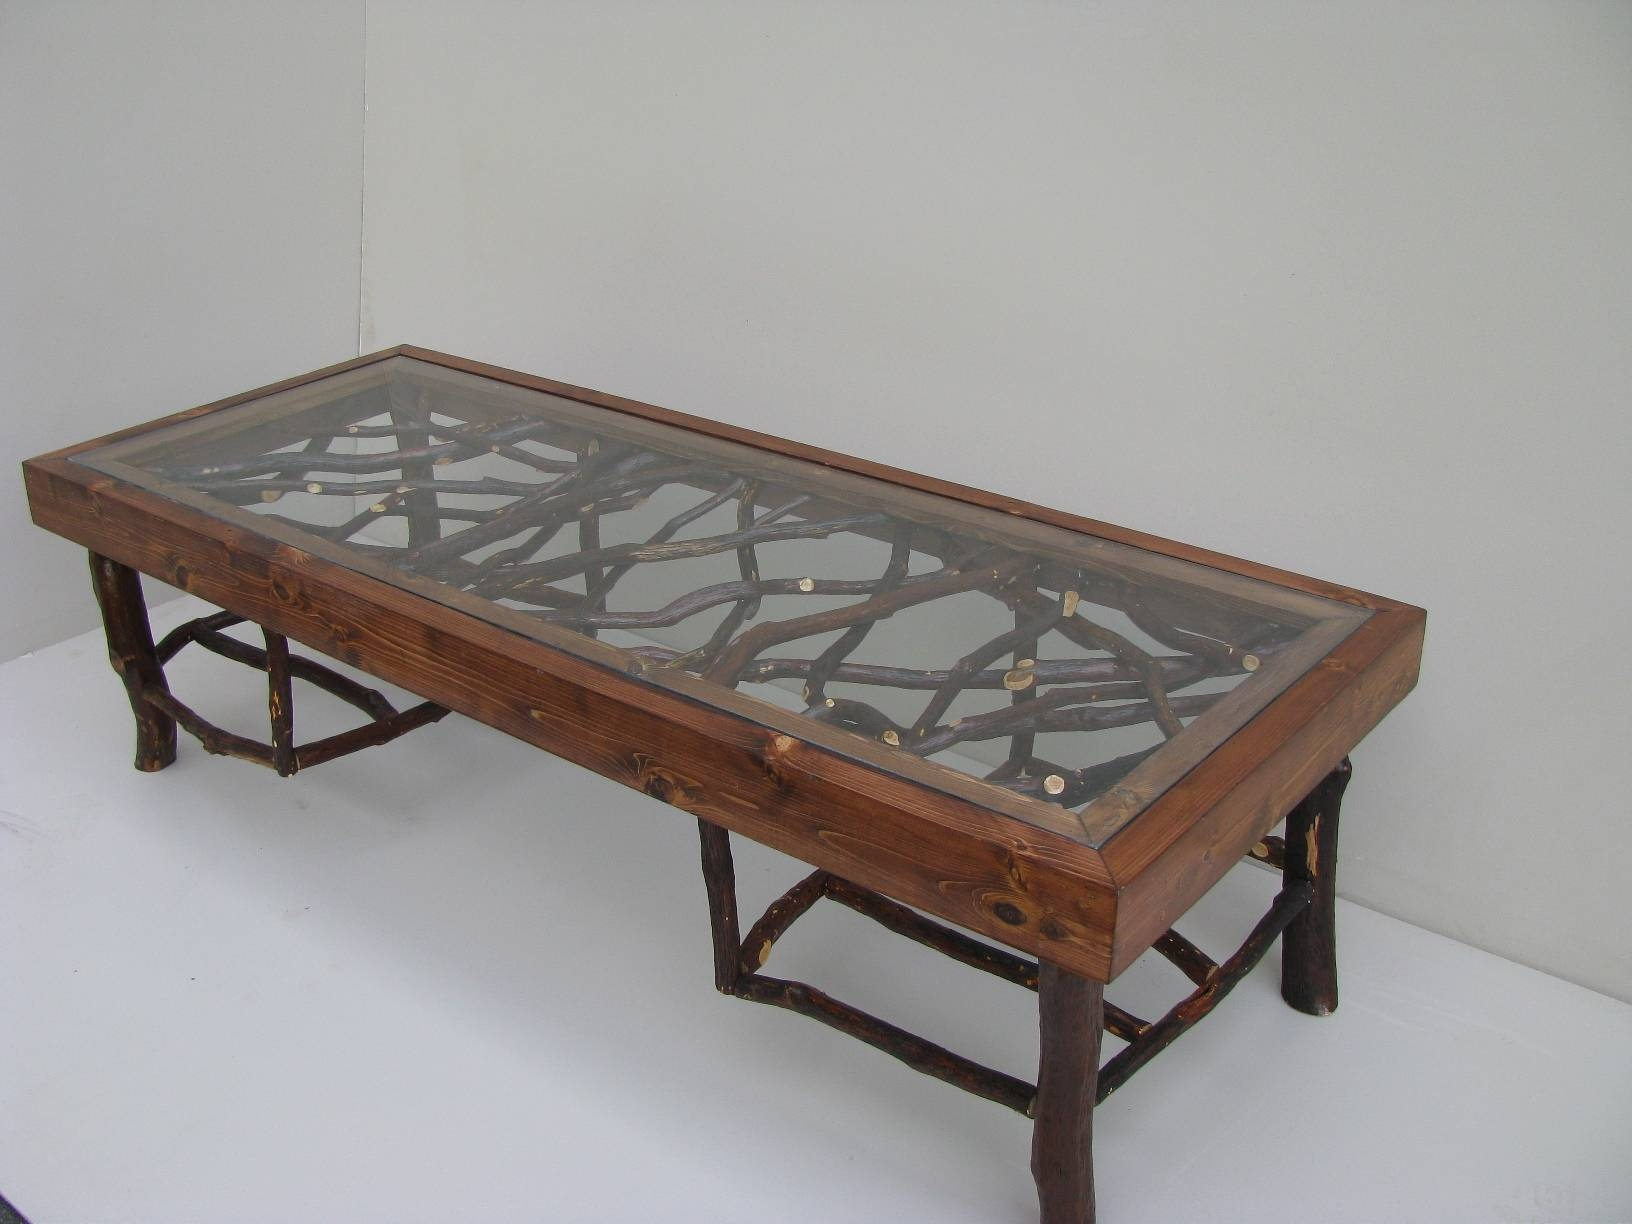 Wood-And-Glass-Coffee-Table-Decor-For-Modern-Coffee-Table-Using in Simple Glass Coffee Tables (Image 30 of 30)